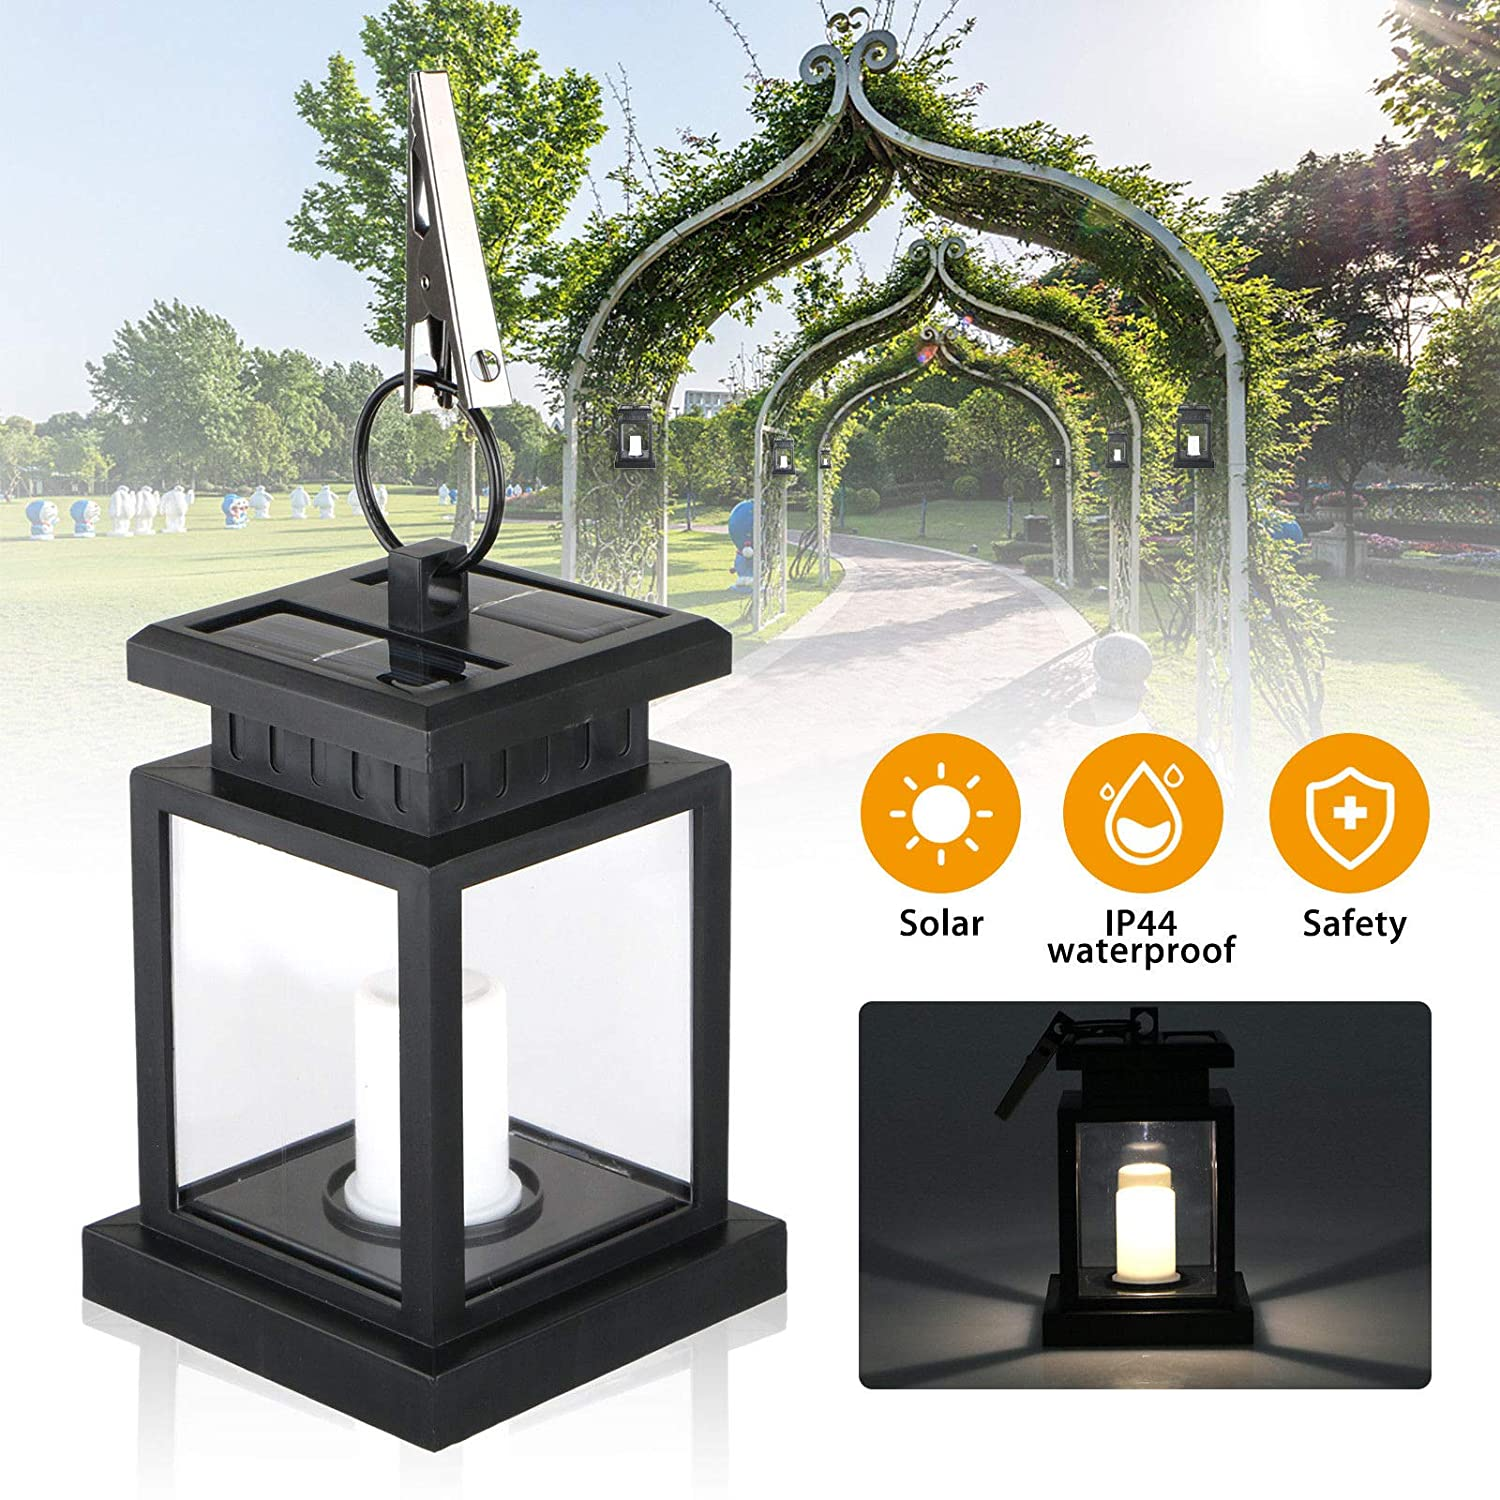 Waterproof Solar Lights for Garden Decoration Flickering Flameless Candle Outdoor Lighting Smokeless Solar Lantern for Camping